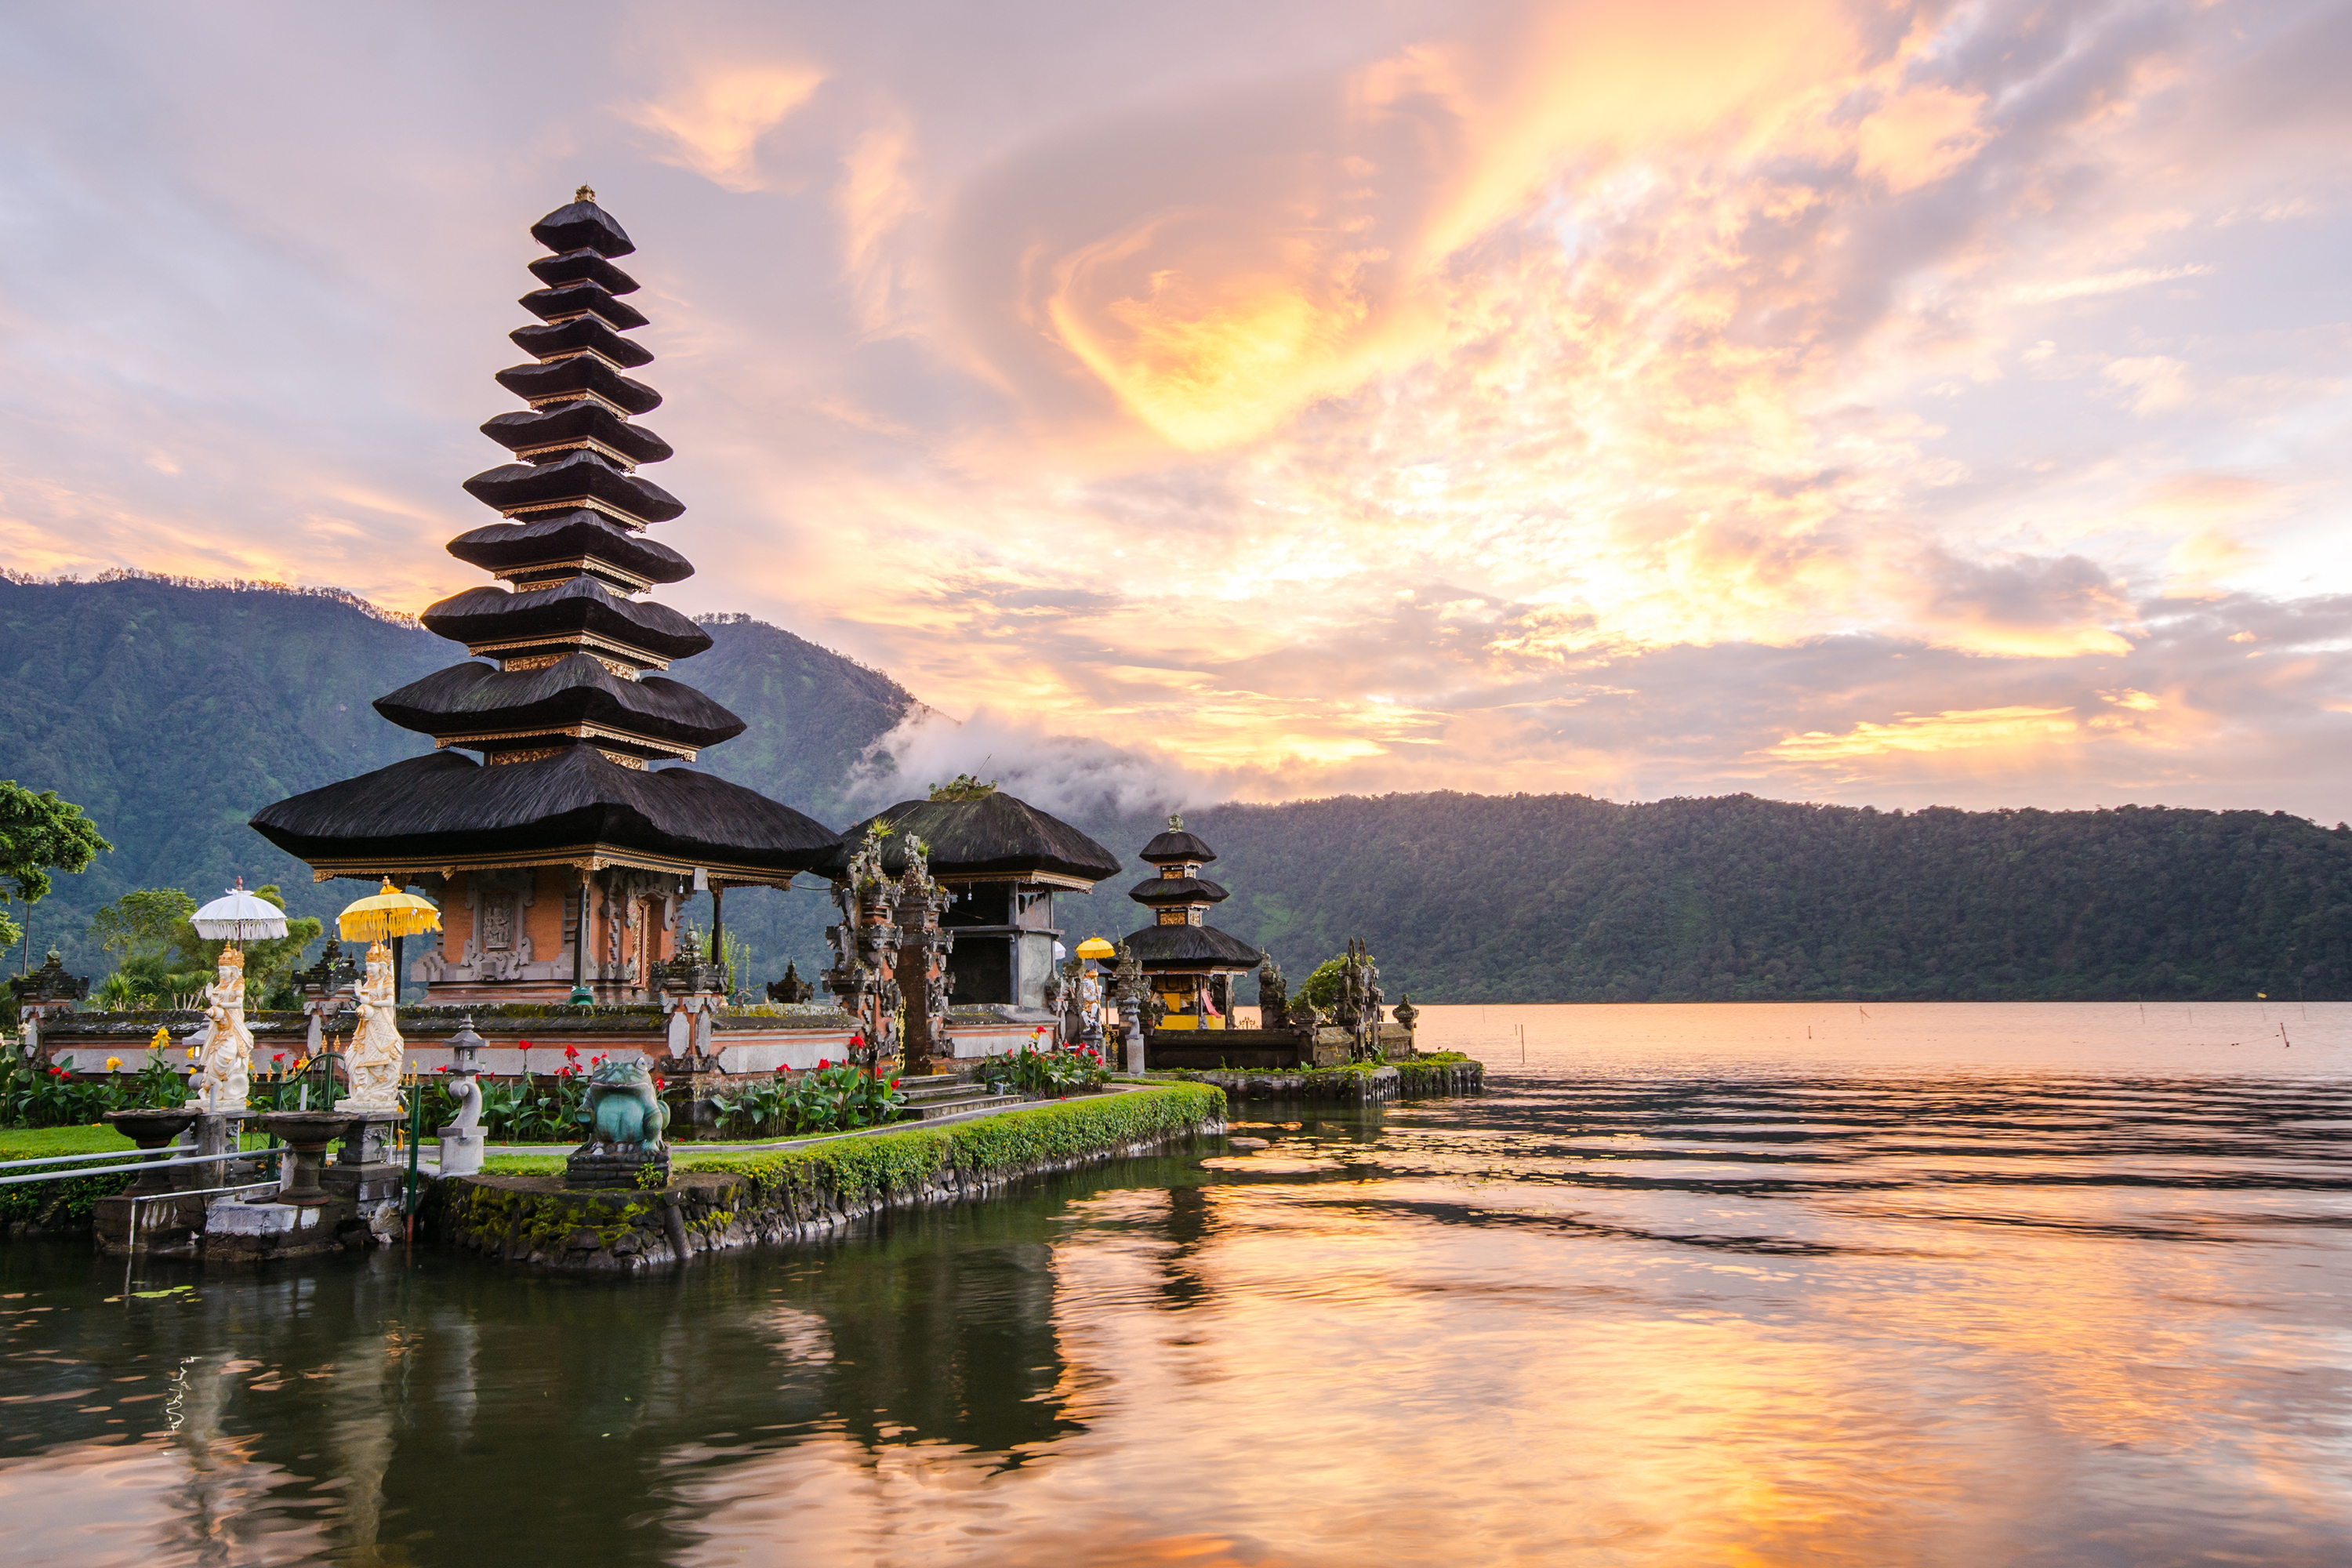 Bali, Indonesia (Getty Images)